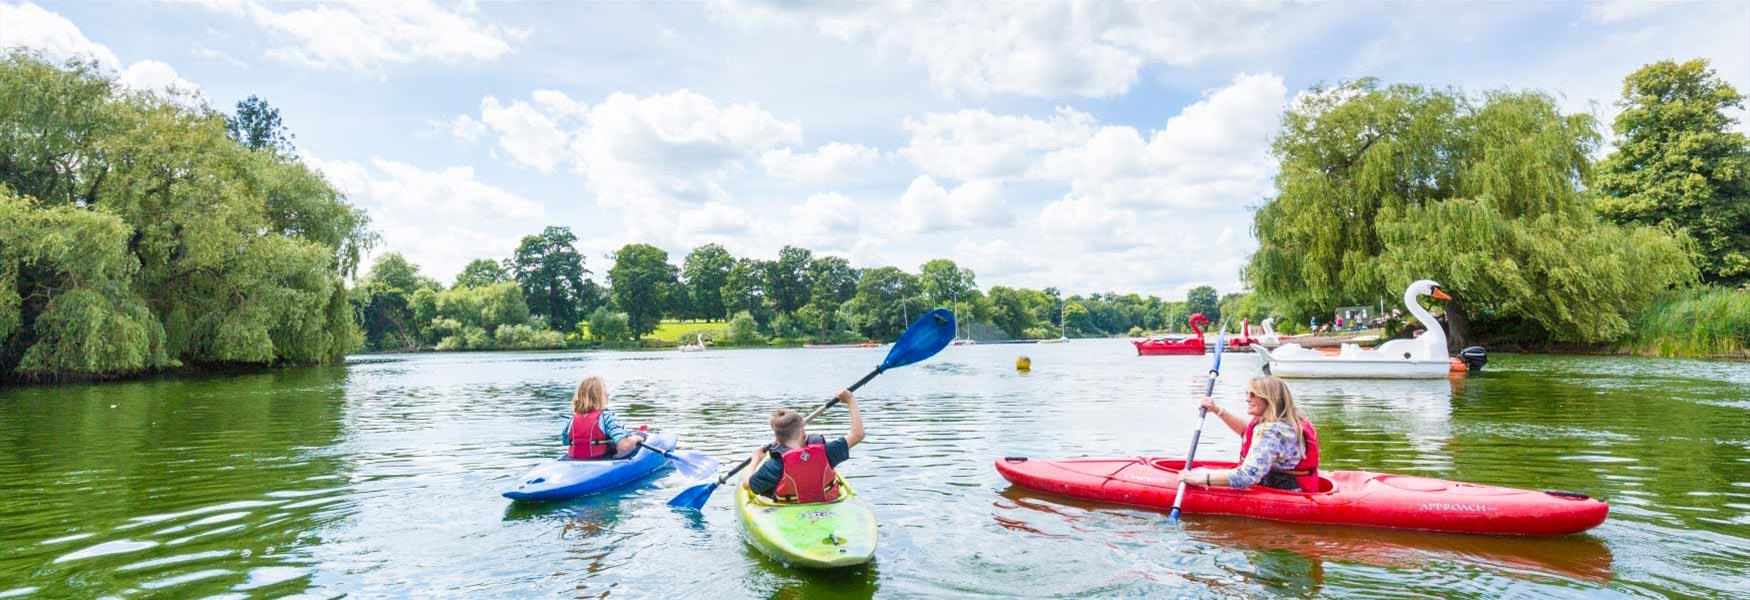 Water adventures on Mote Park Lake